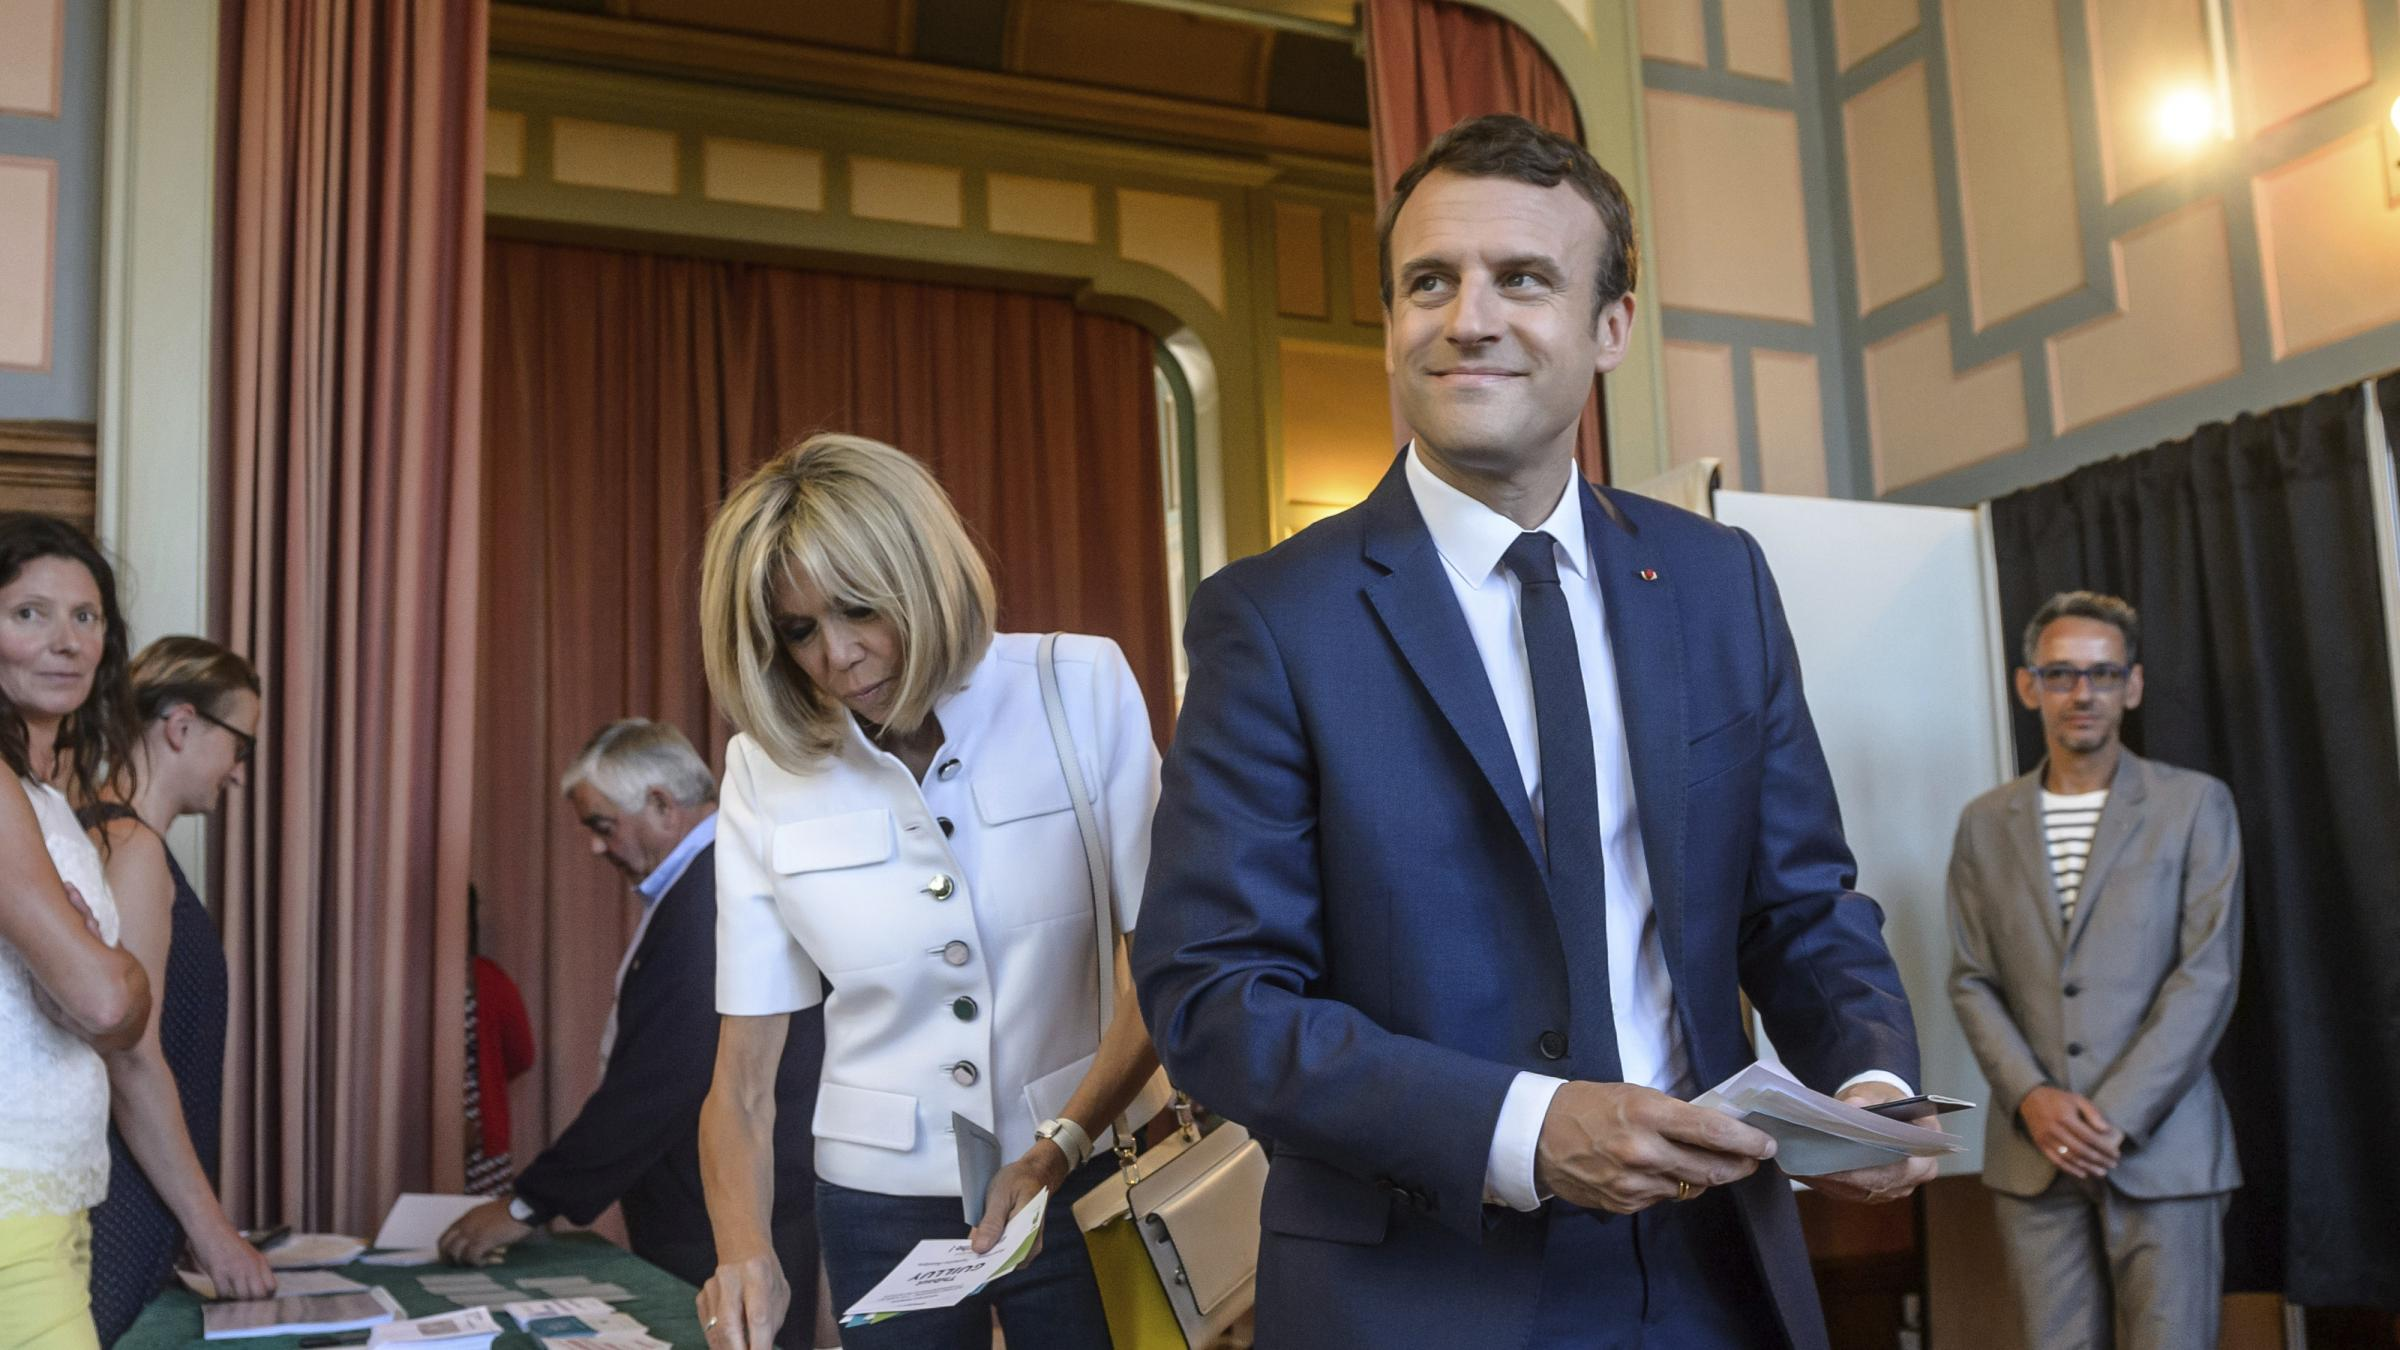 France's Macron heads for crushing parliamentary majority